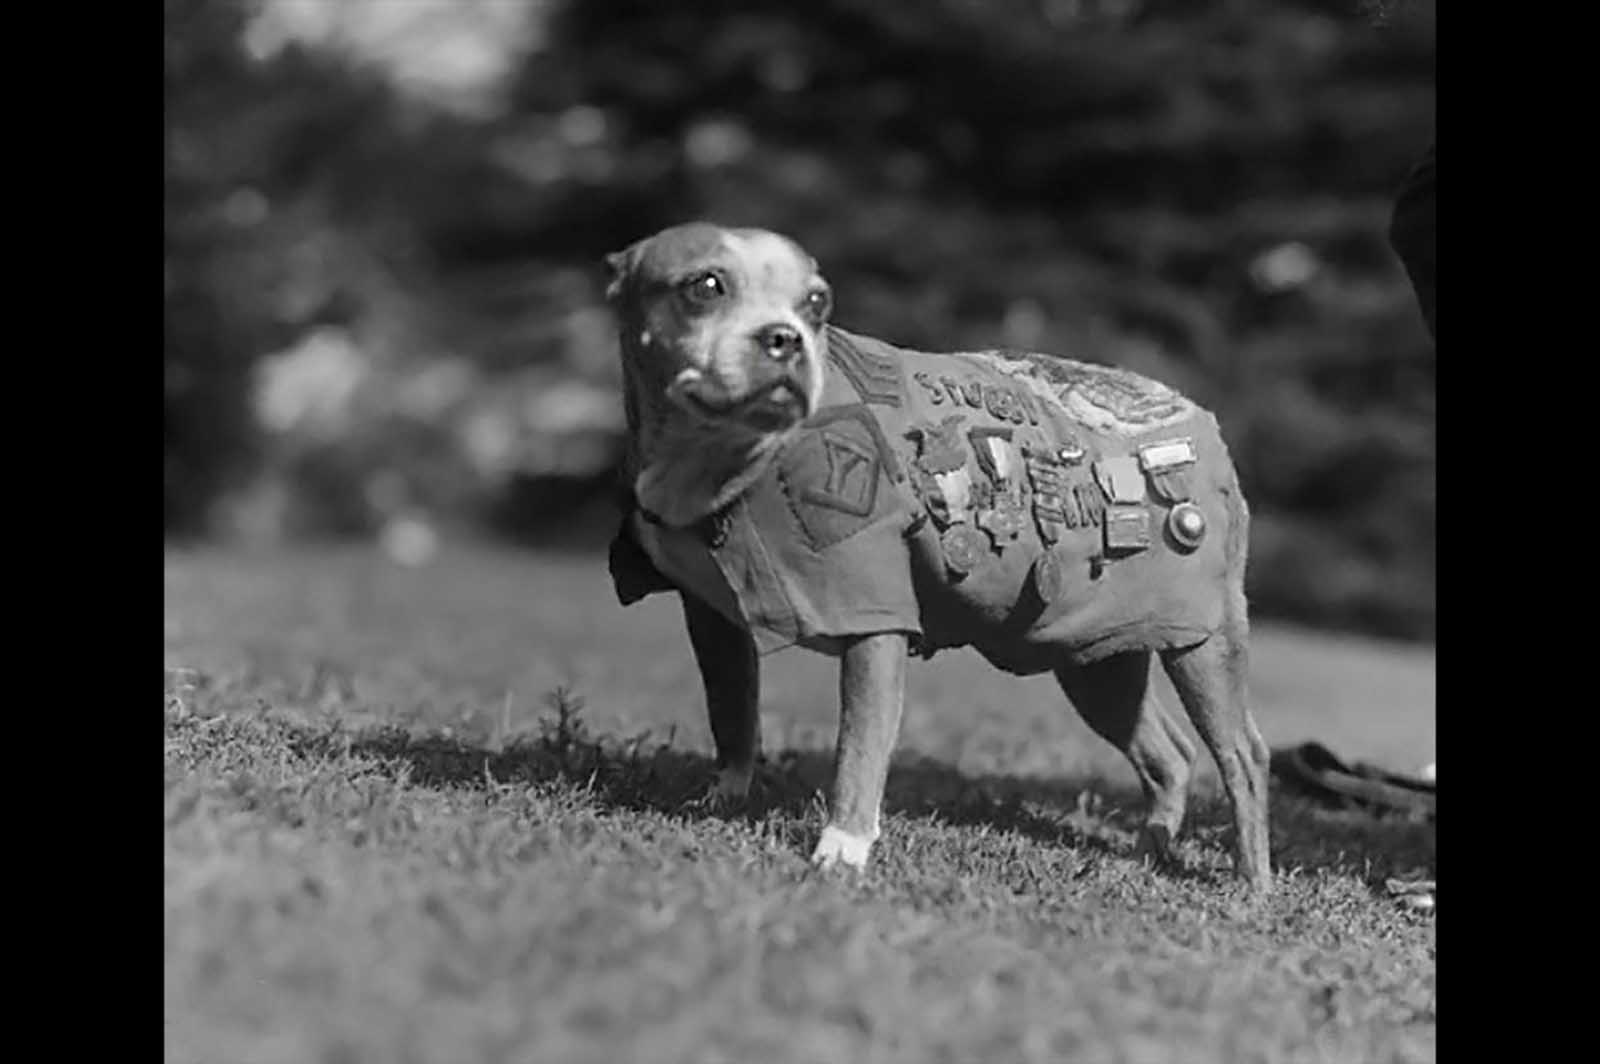 Sergeant Stubby was the most decorated war dog of World War I and the only dog to be promoted to sergeant through combat. The Boston Bull Terrier started out as the mascot of the 102nd Infantry, 26th Yankee Division, and ended up becoming a full-fledged combat dog. Brought up to the front lines, he was injured in a gas attack early on, which gave him a sensitivity to gas that later allowed him to warn his soldiers of incoming gas attacks by running and barking. He helped find wounded soldiers, even captured a German spy who was trying to map allied trenches. Stubby was the first dog ever given rank in the United States Armed Forces, and was highly decorated for his participation in seventeen engagements, and being wounded twice.